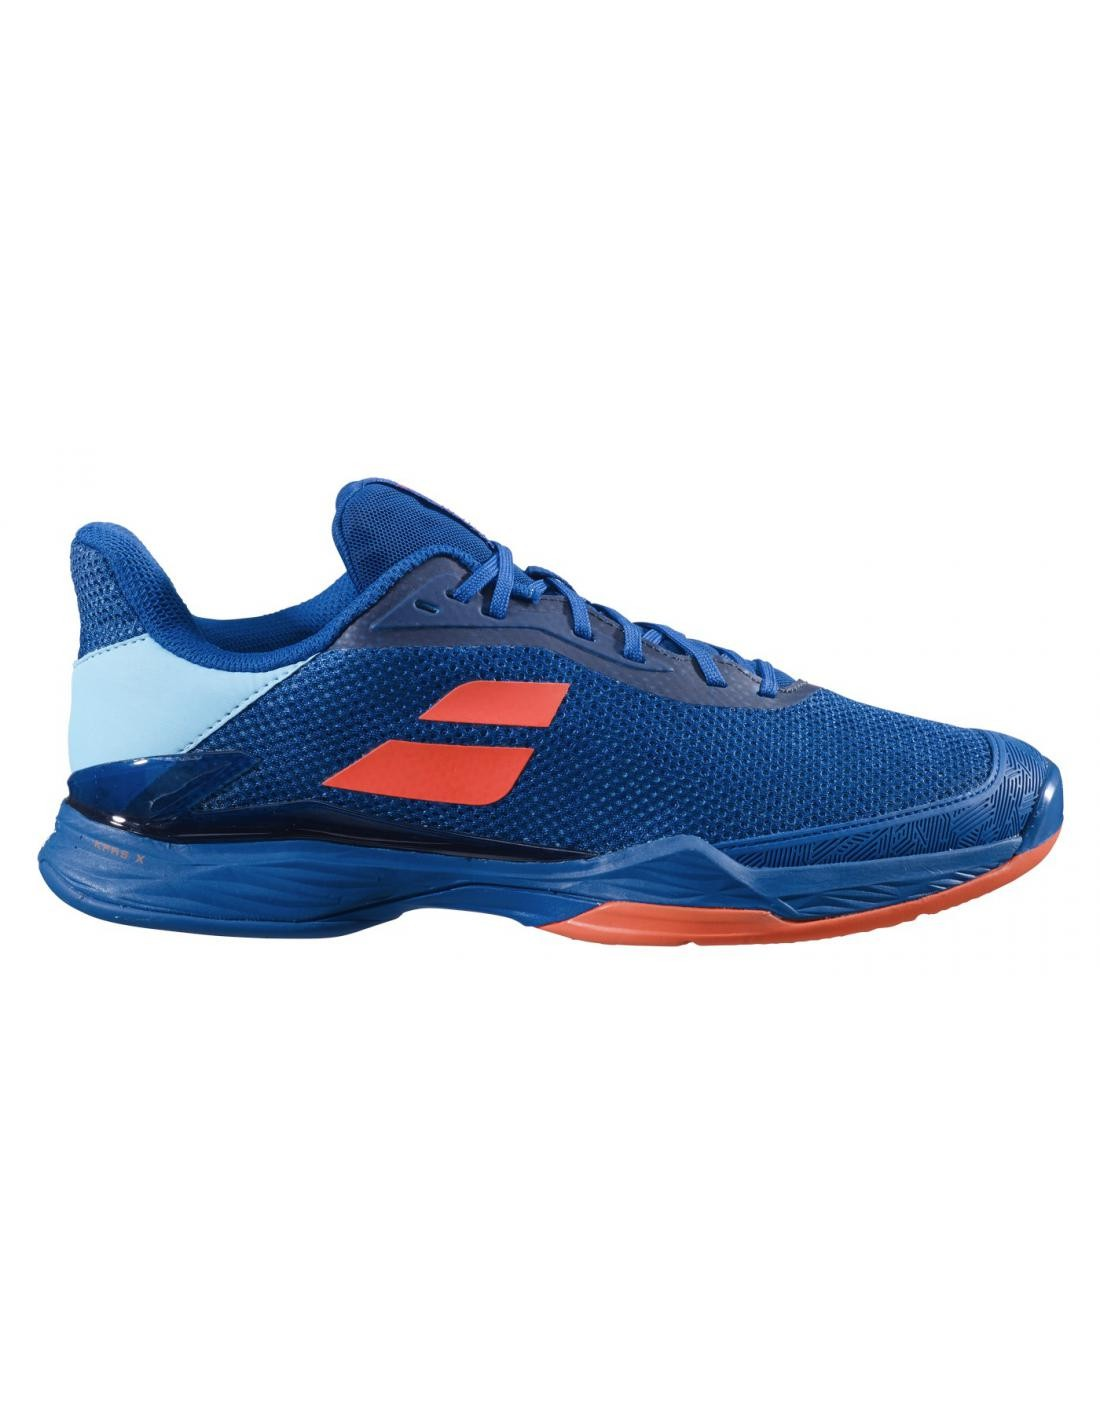 Buty tenisowe Babolat Tere All Court Blue 2020